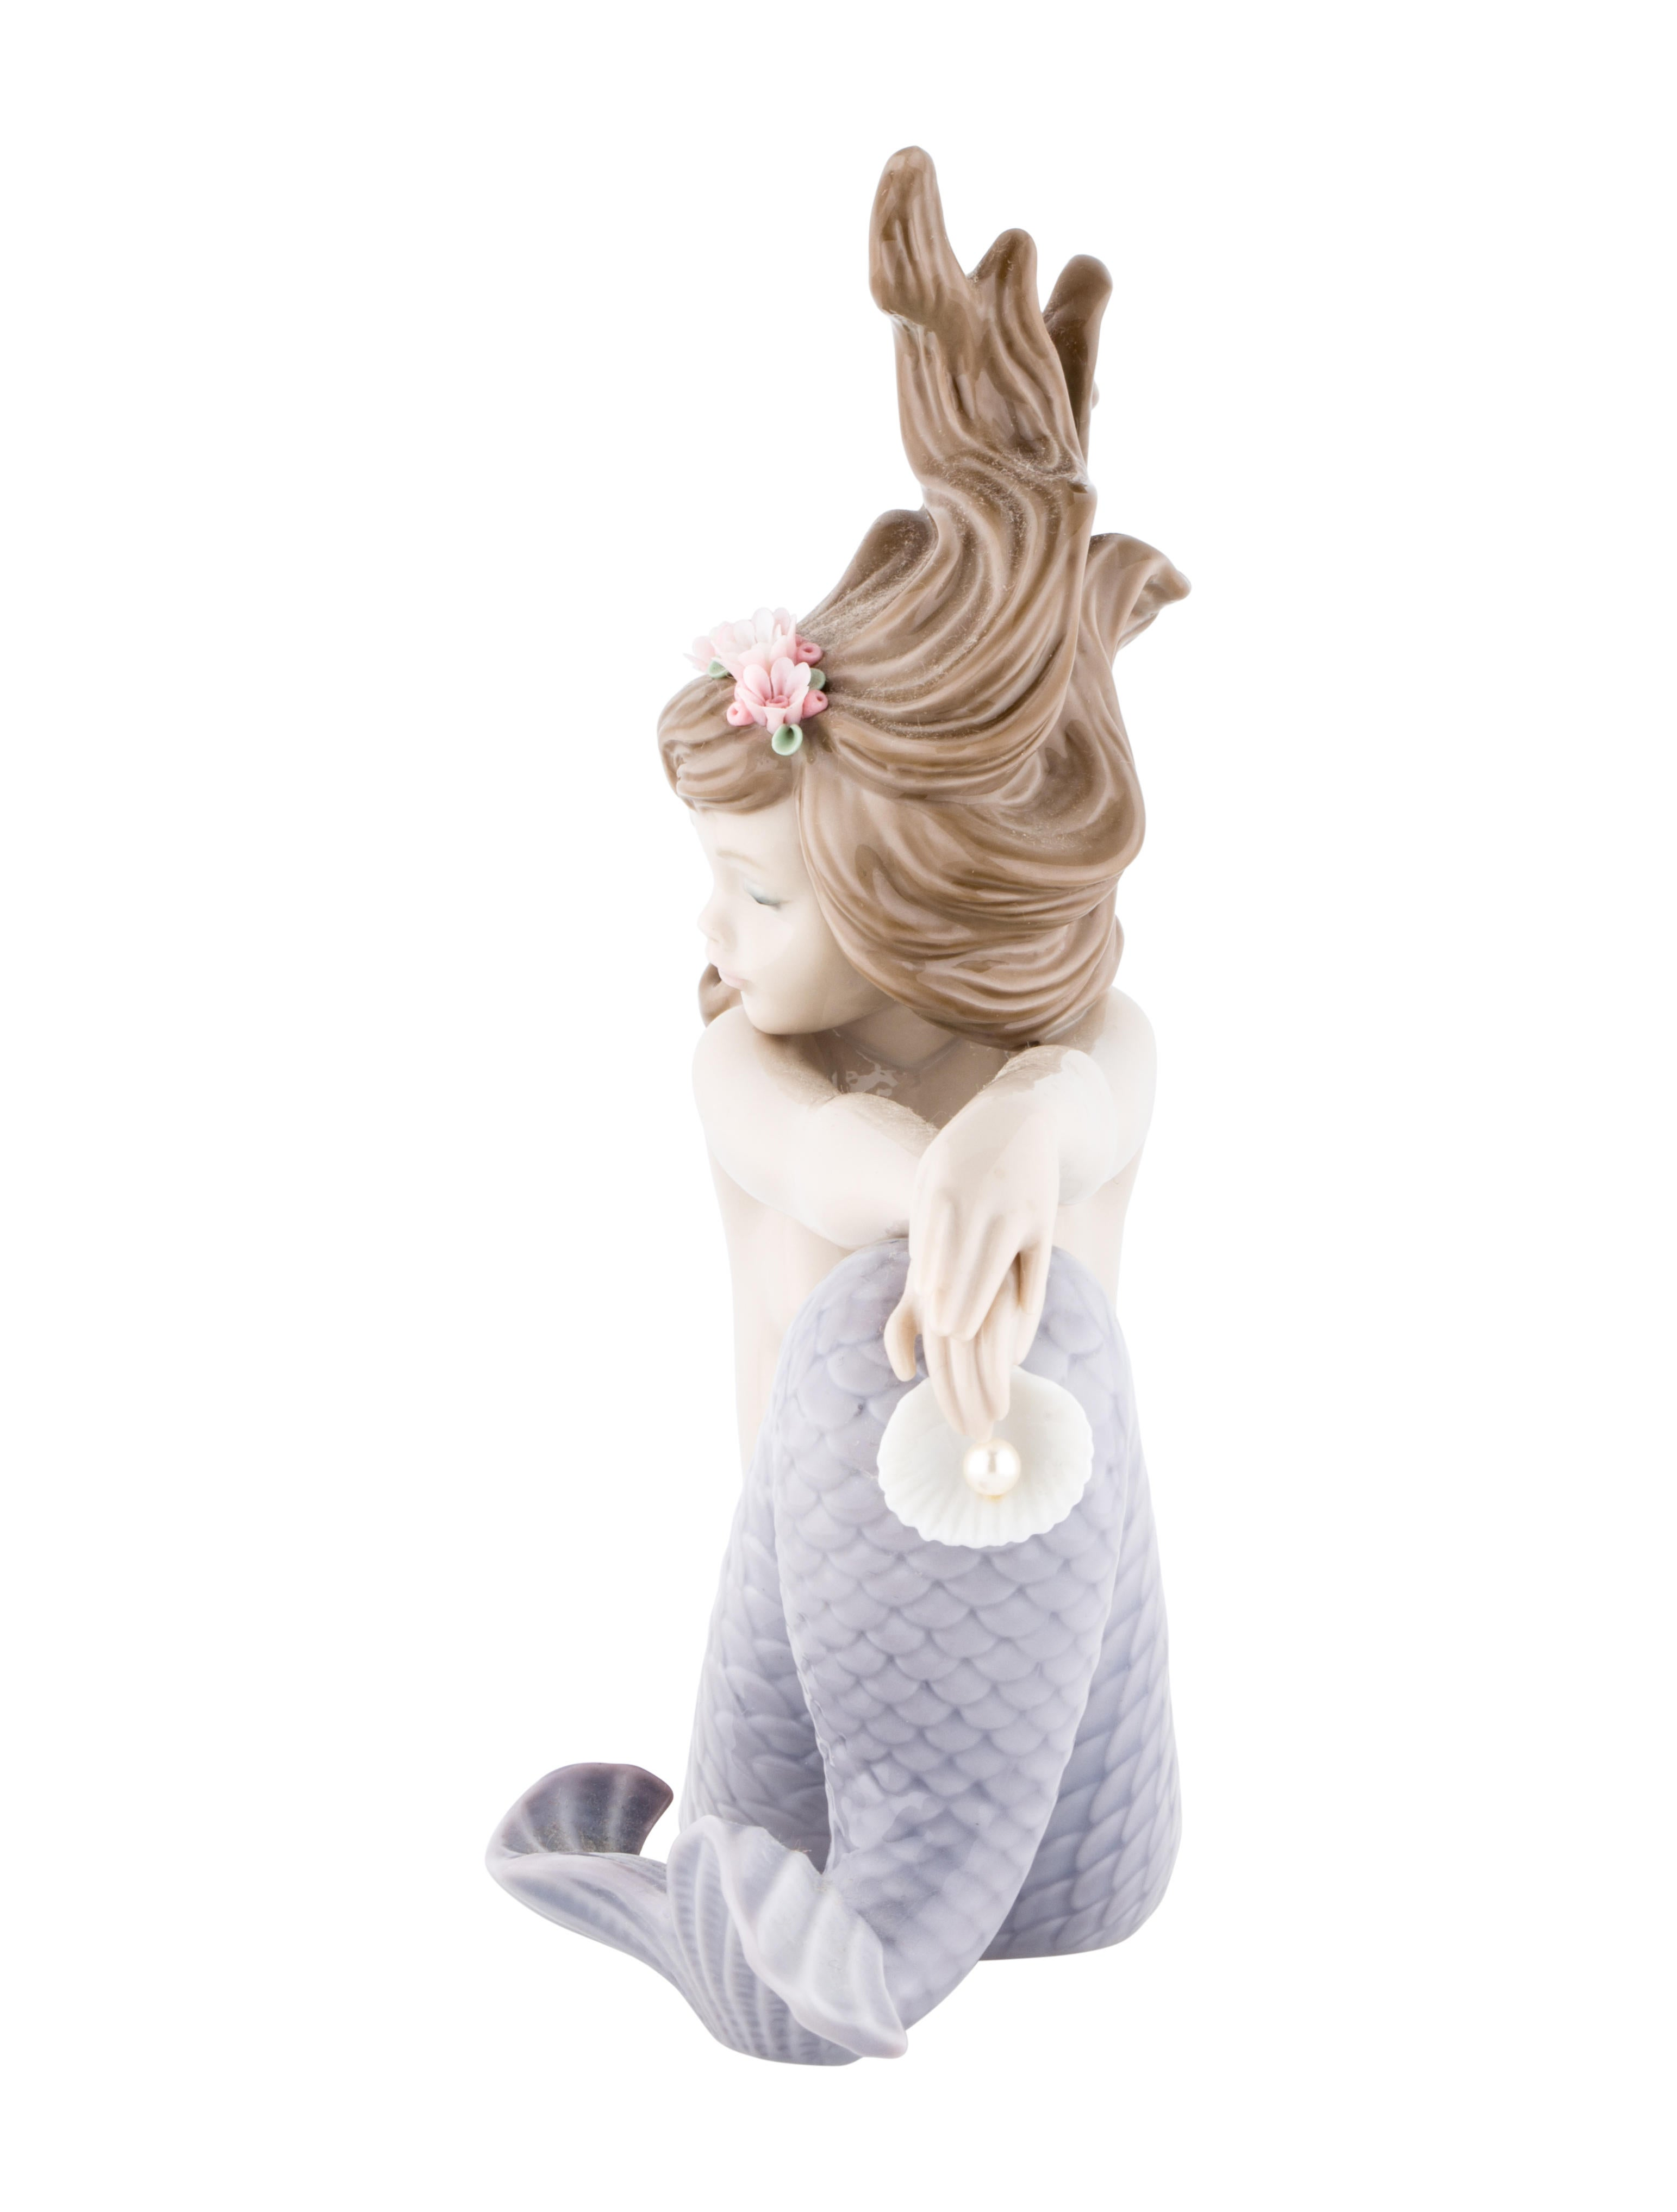 Mermaid Sculpture Decor And Accessories Hme20532 The